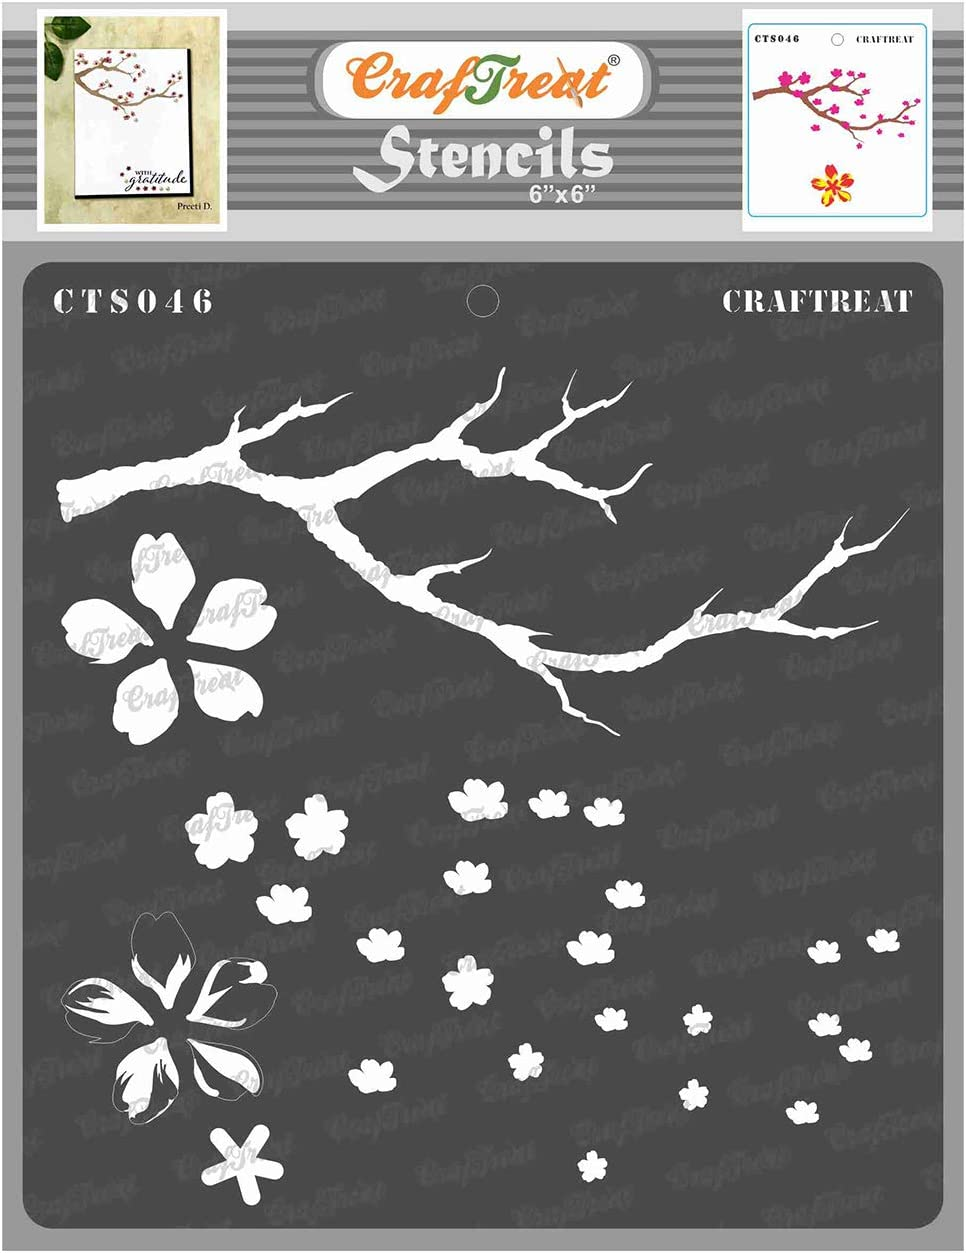 CrafTreat Layered Flower Stencils for Painting on Wood, Canvas, Paper, Fabric, Floor, Wall and Tile - Cherry Blossom Tree - 6x6 Inches - Reusable DIY Art and Craft Stencils for Painting Flowers